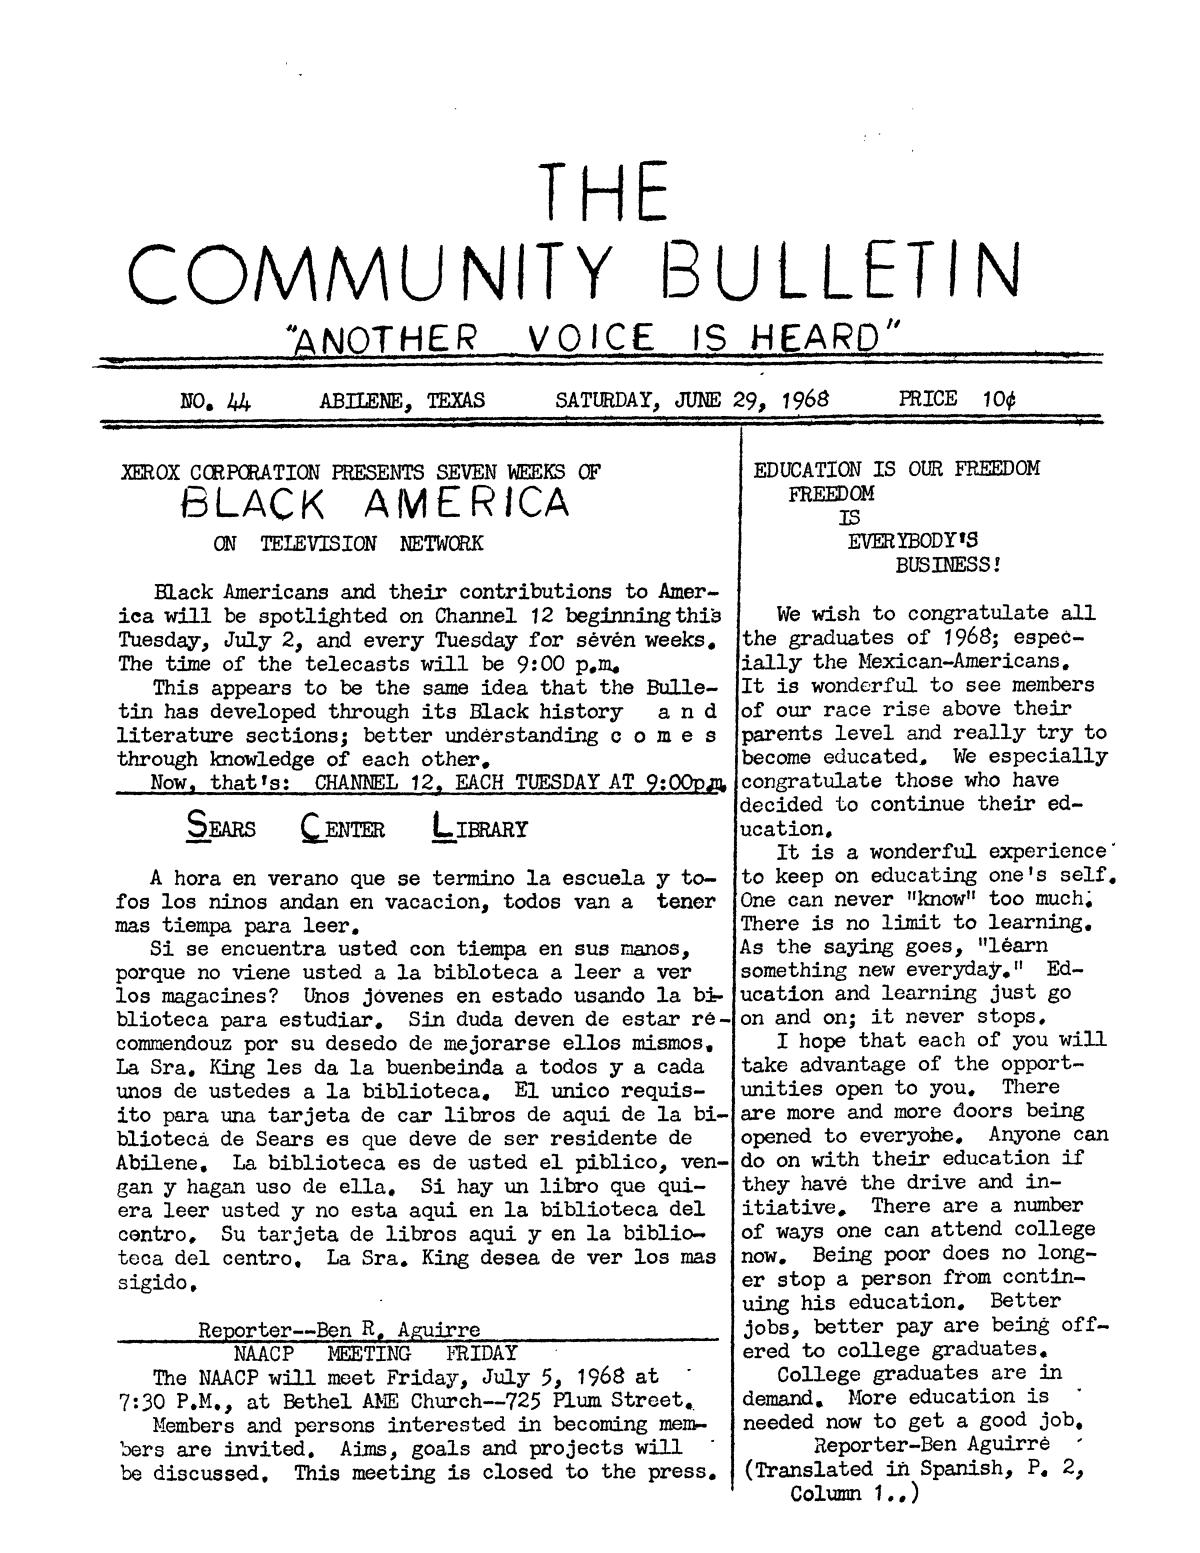 The Community Bulletin (Abilene, Texas), No. 44, Saturday, June 29, 1968                                                                                                      1